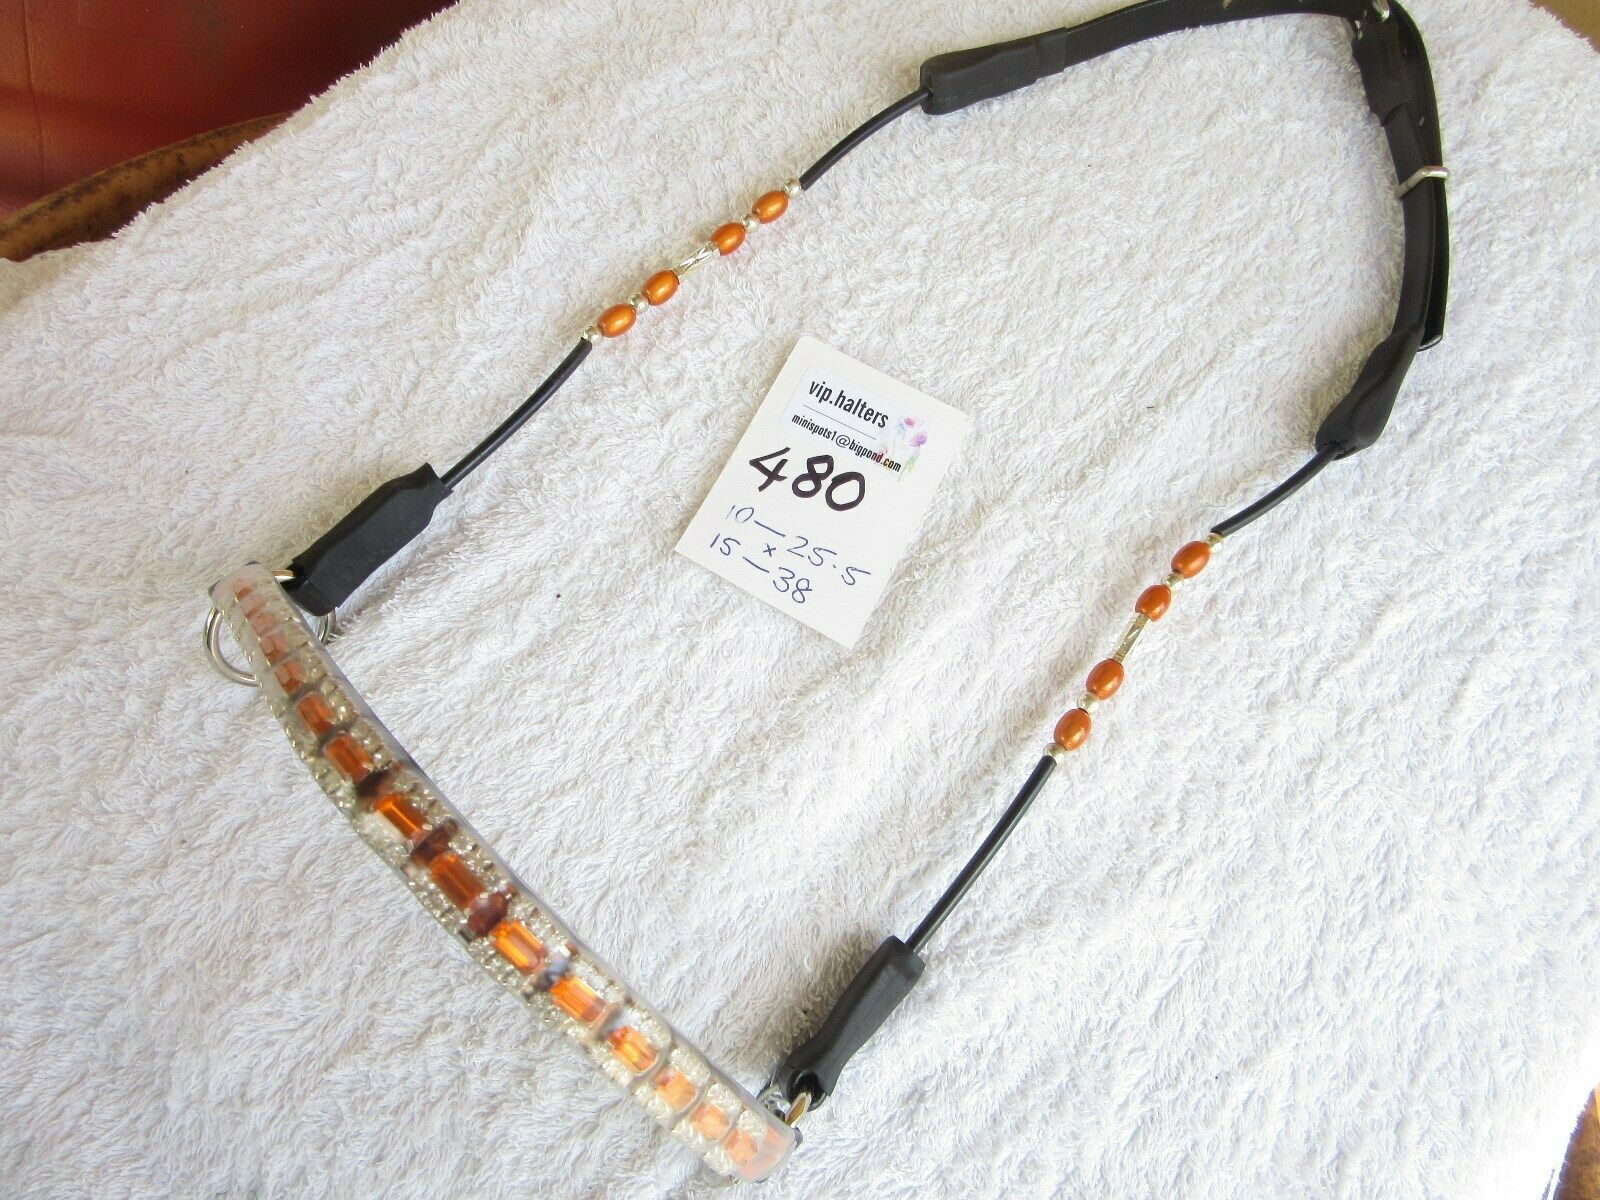 vip 480  Arab Arabian cable beaded Show Halter bridle  - SMALL size